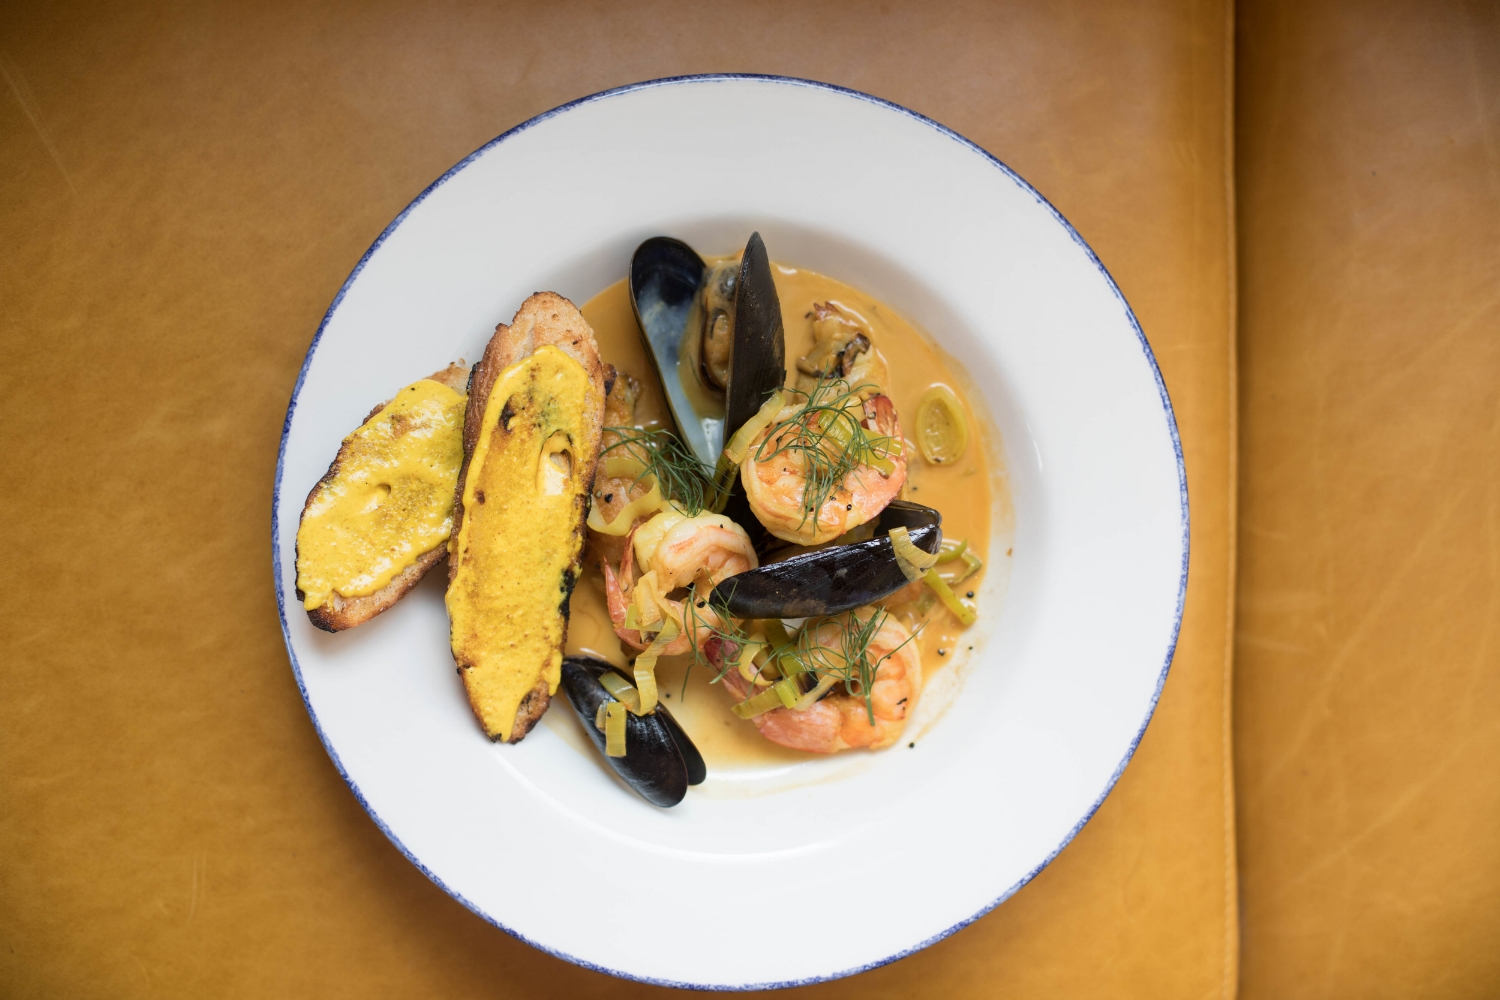 Jimena-Peck-Denver-Food-Photographer-The-Emporium-Kitchen-And-Wine-Market-Mussels-Chorizo